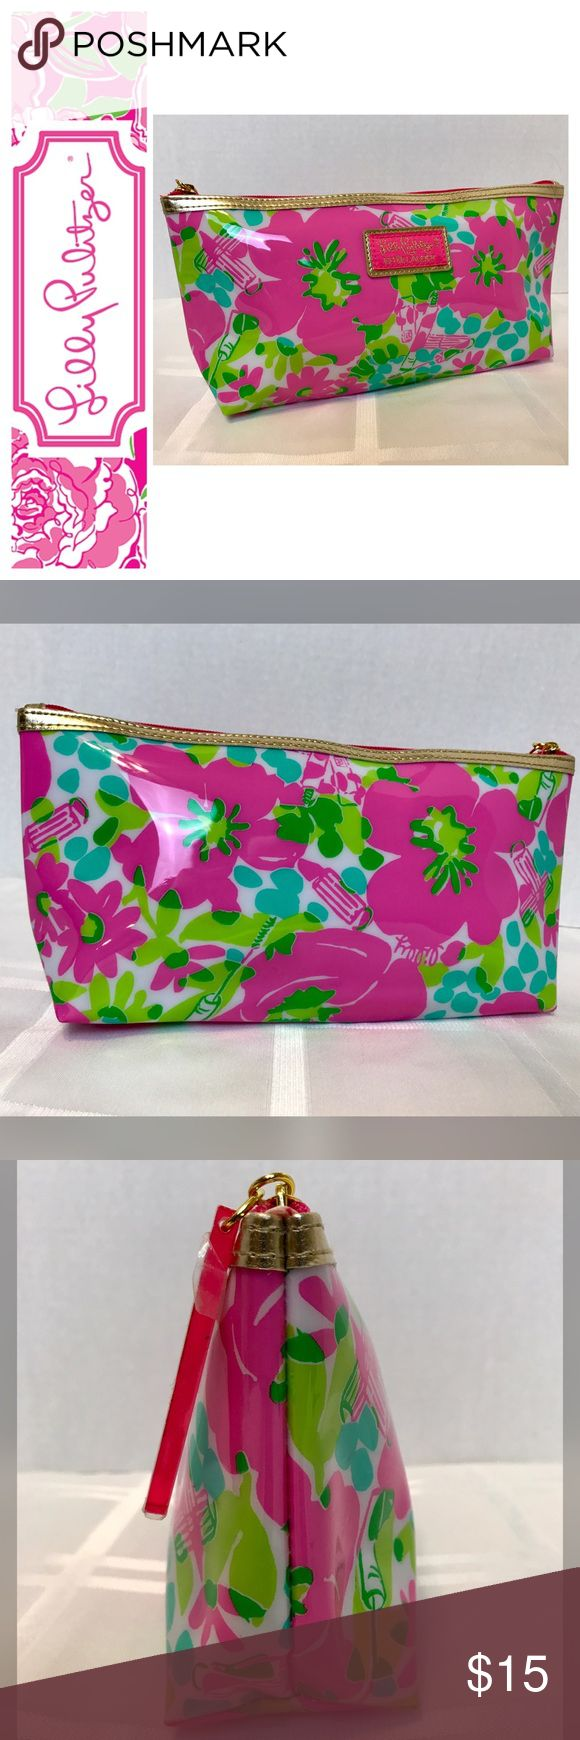 """NWOT Lilly Pulitzer Cosmetic Bag Lilly Pulitzer for Estēe Lauderdale Cosmetic Bag, PVC Material with Gold Trim Making it Easy to Wipe Clean, Approx. Size is 10 1/2""""x 4 1/2""""x 2 1/4"""", NWOT Lilly Pulitzer Bags Cosmetic Bags & Cases"""